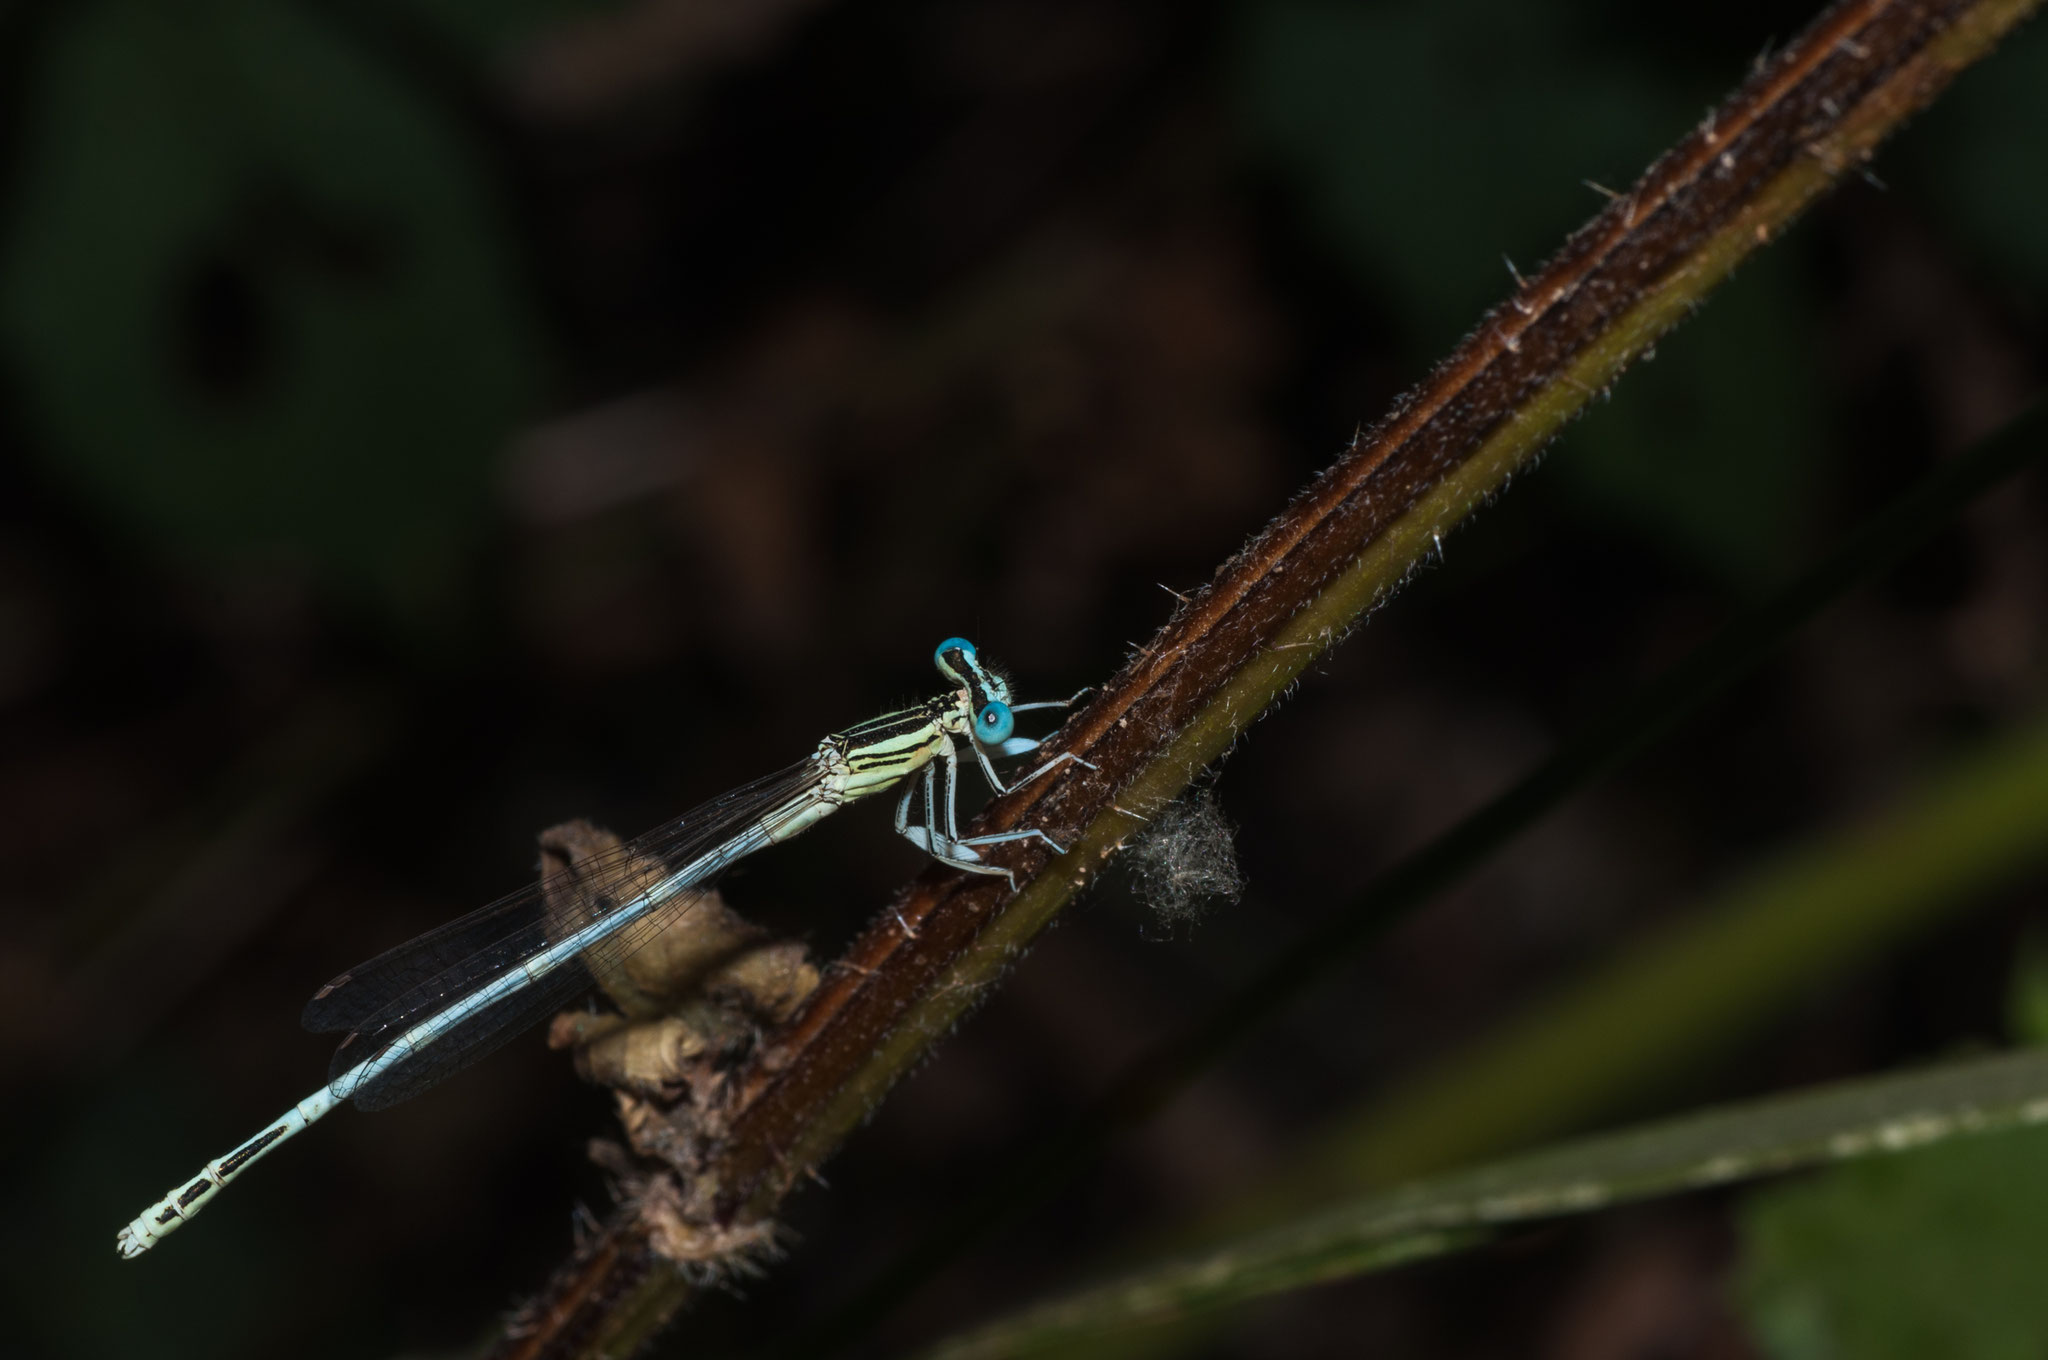 Platycnemis latipes